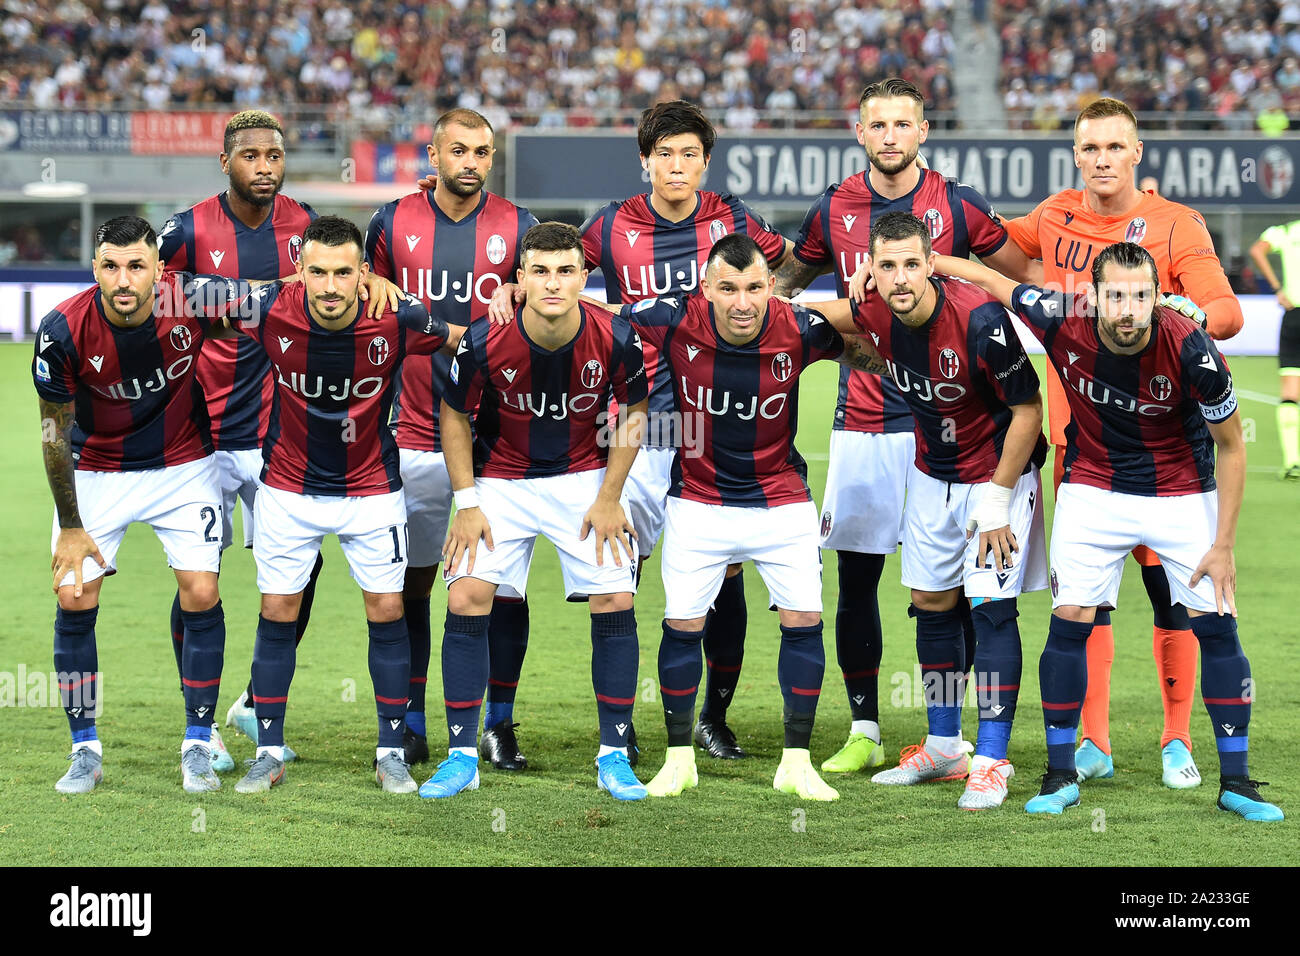 Bologna Fc High Resolution Stock Photography And Images Alamy